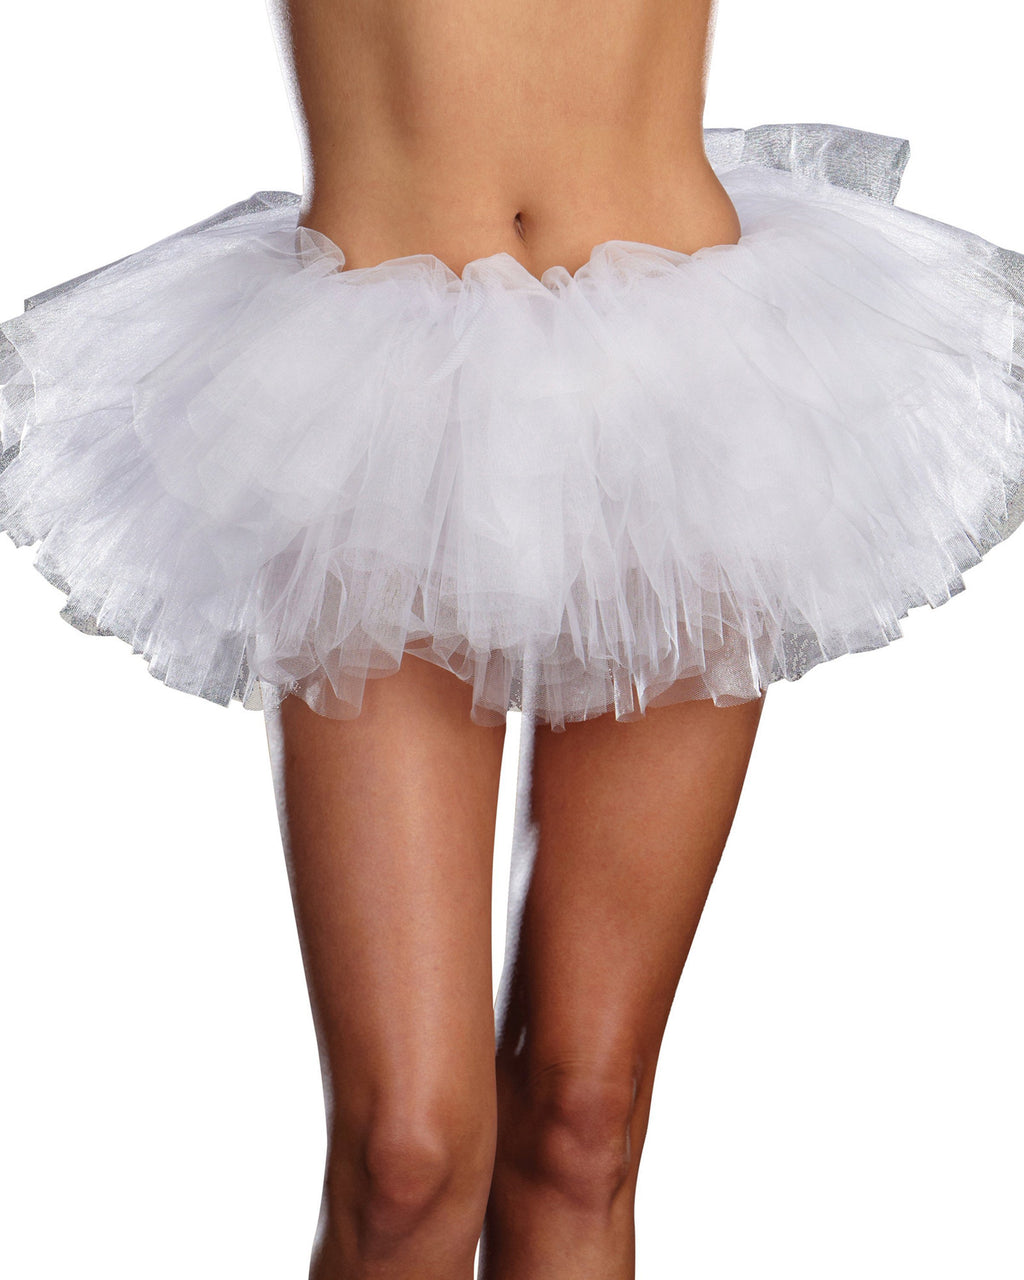 Tutu Petticoat Costume Accessory Dreamgirl Costume One Size White